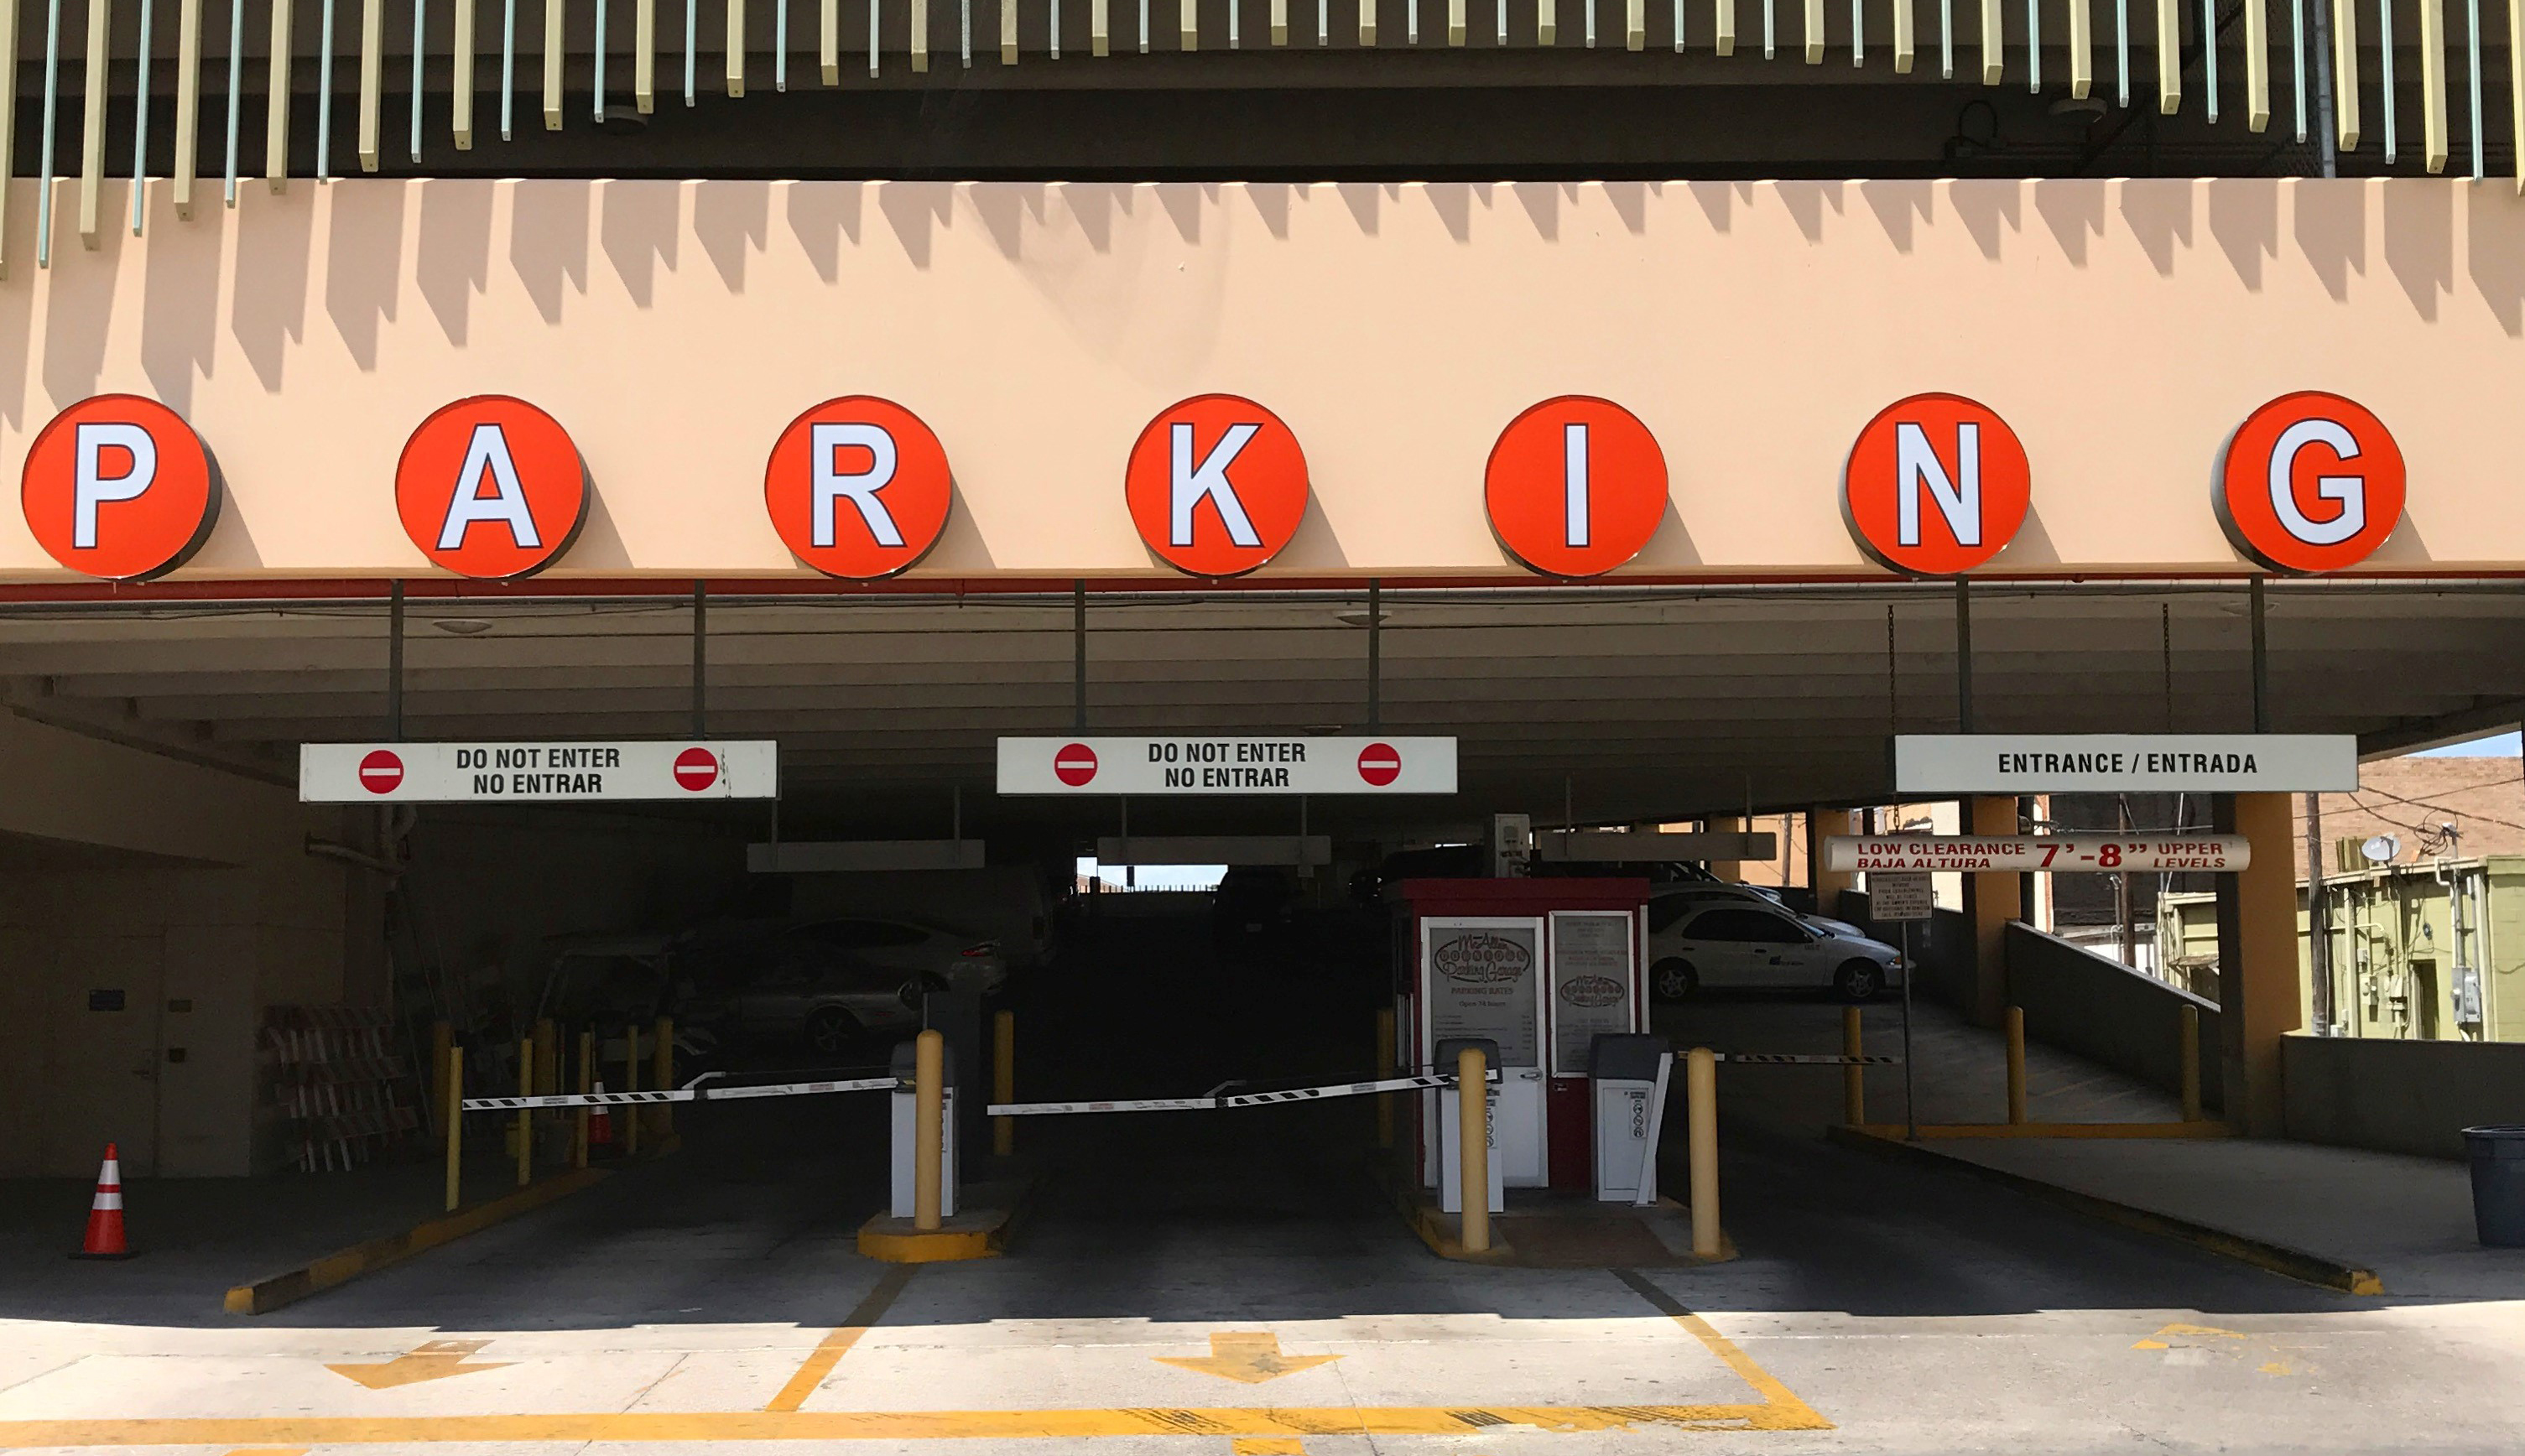 entrance to parking garage of City of McAllen